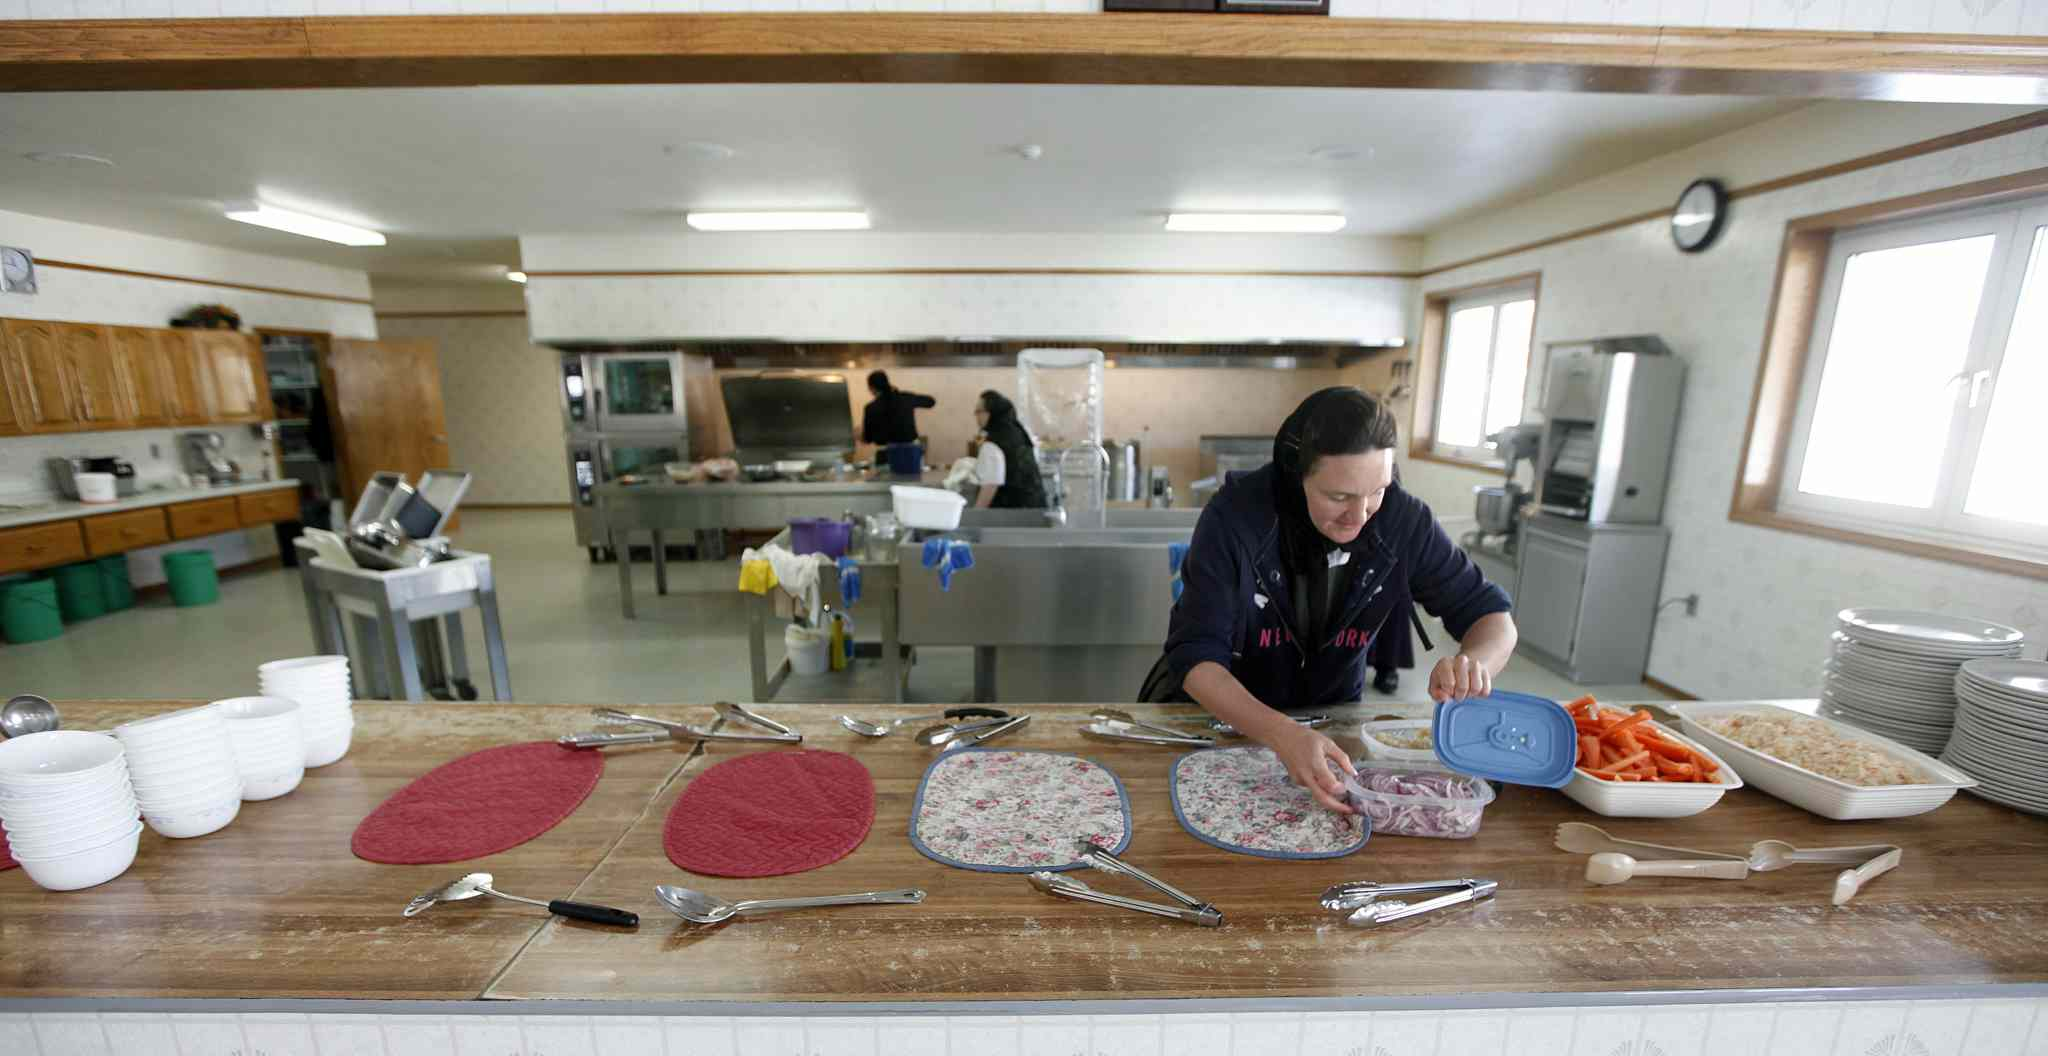 Tizrah Maendel takes her turn preparing daily meals at the colony, where women rotate kitchen duties and the community eats communally.  (Phil Hossack / Winnipeg Free Press)